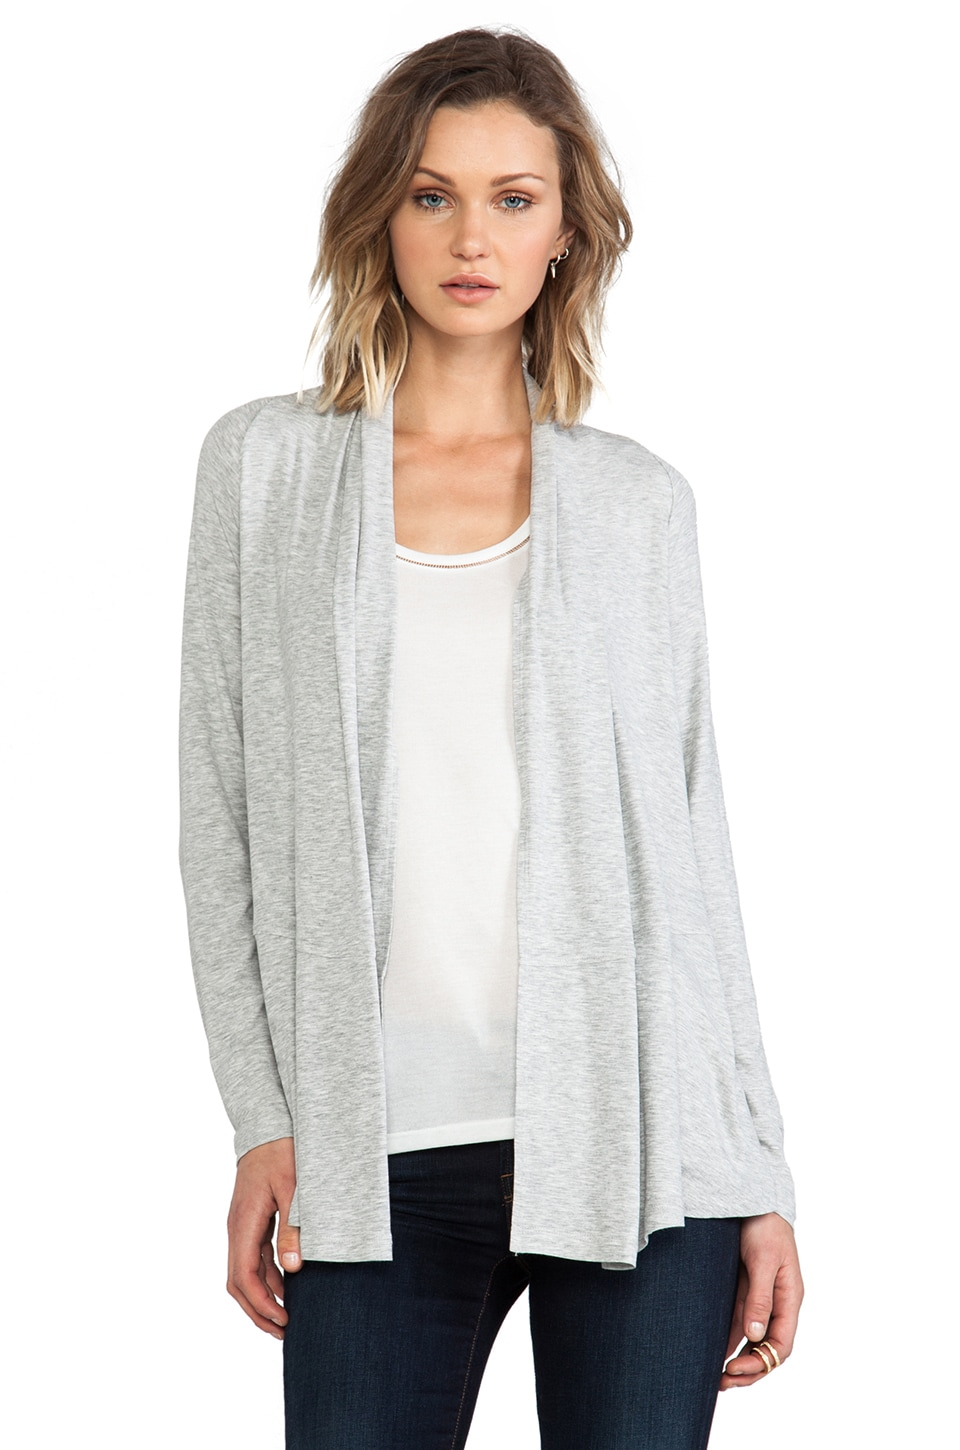 Theory Kalalyn K Cardigan in Frosted Grey